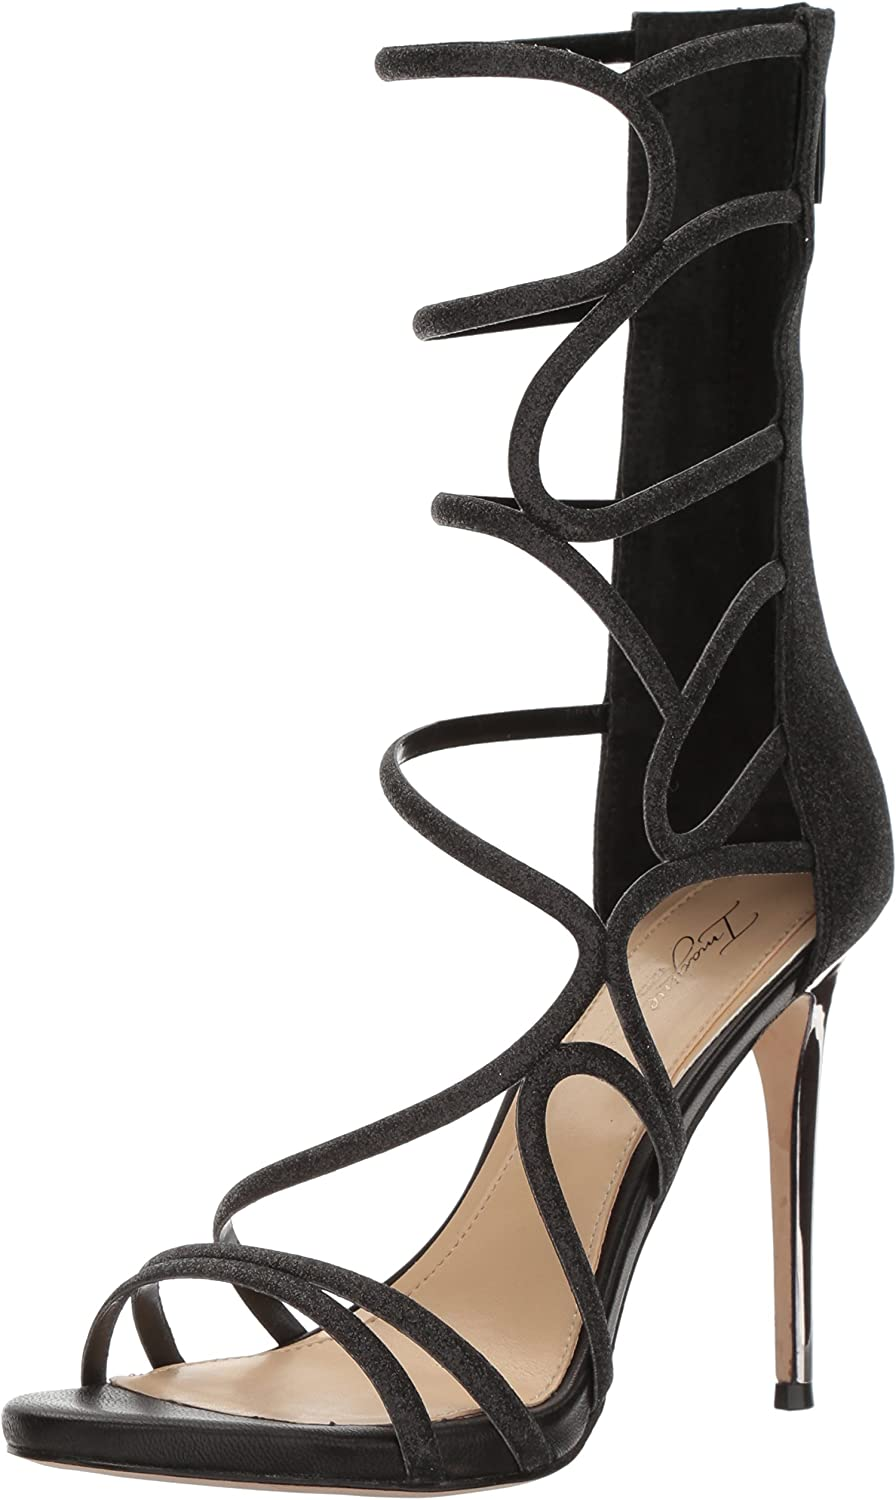 Imagine Vince Camuto Womens Daisi Heeled Sandal